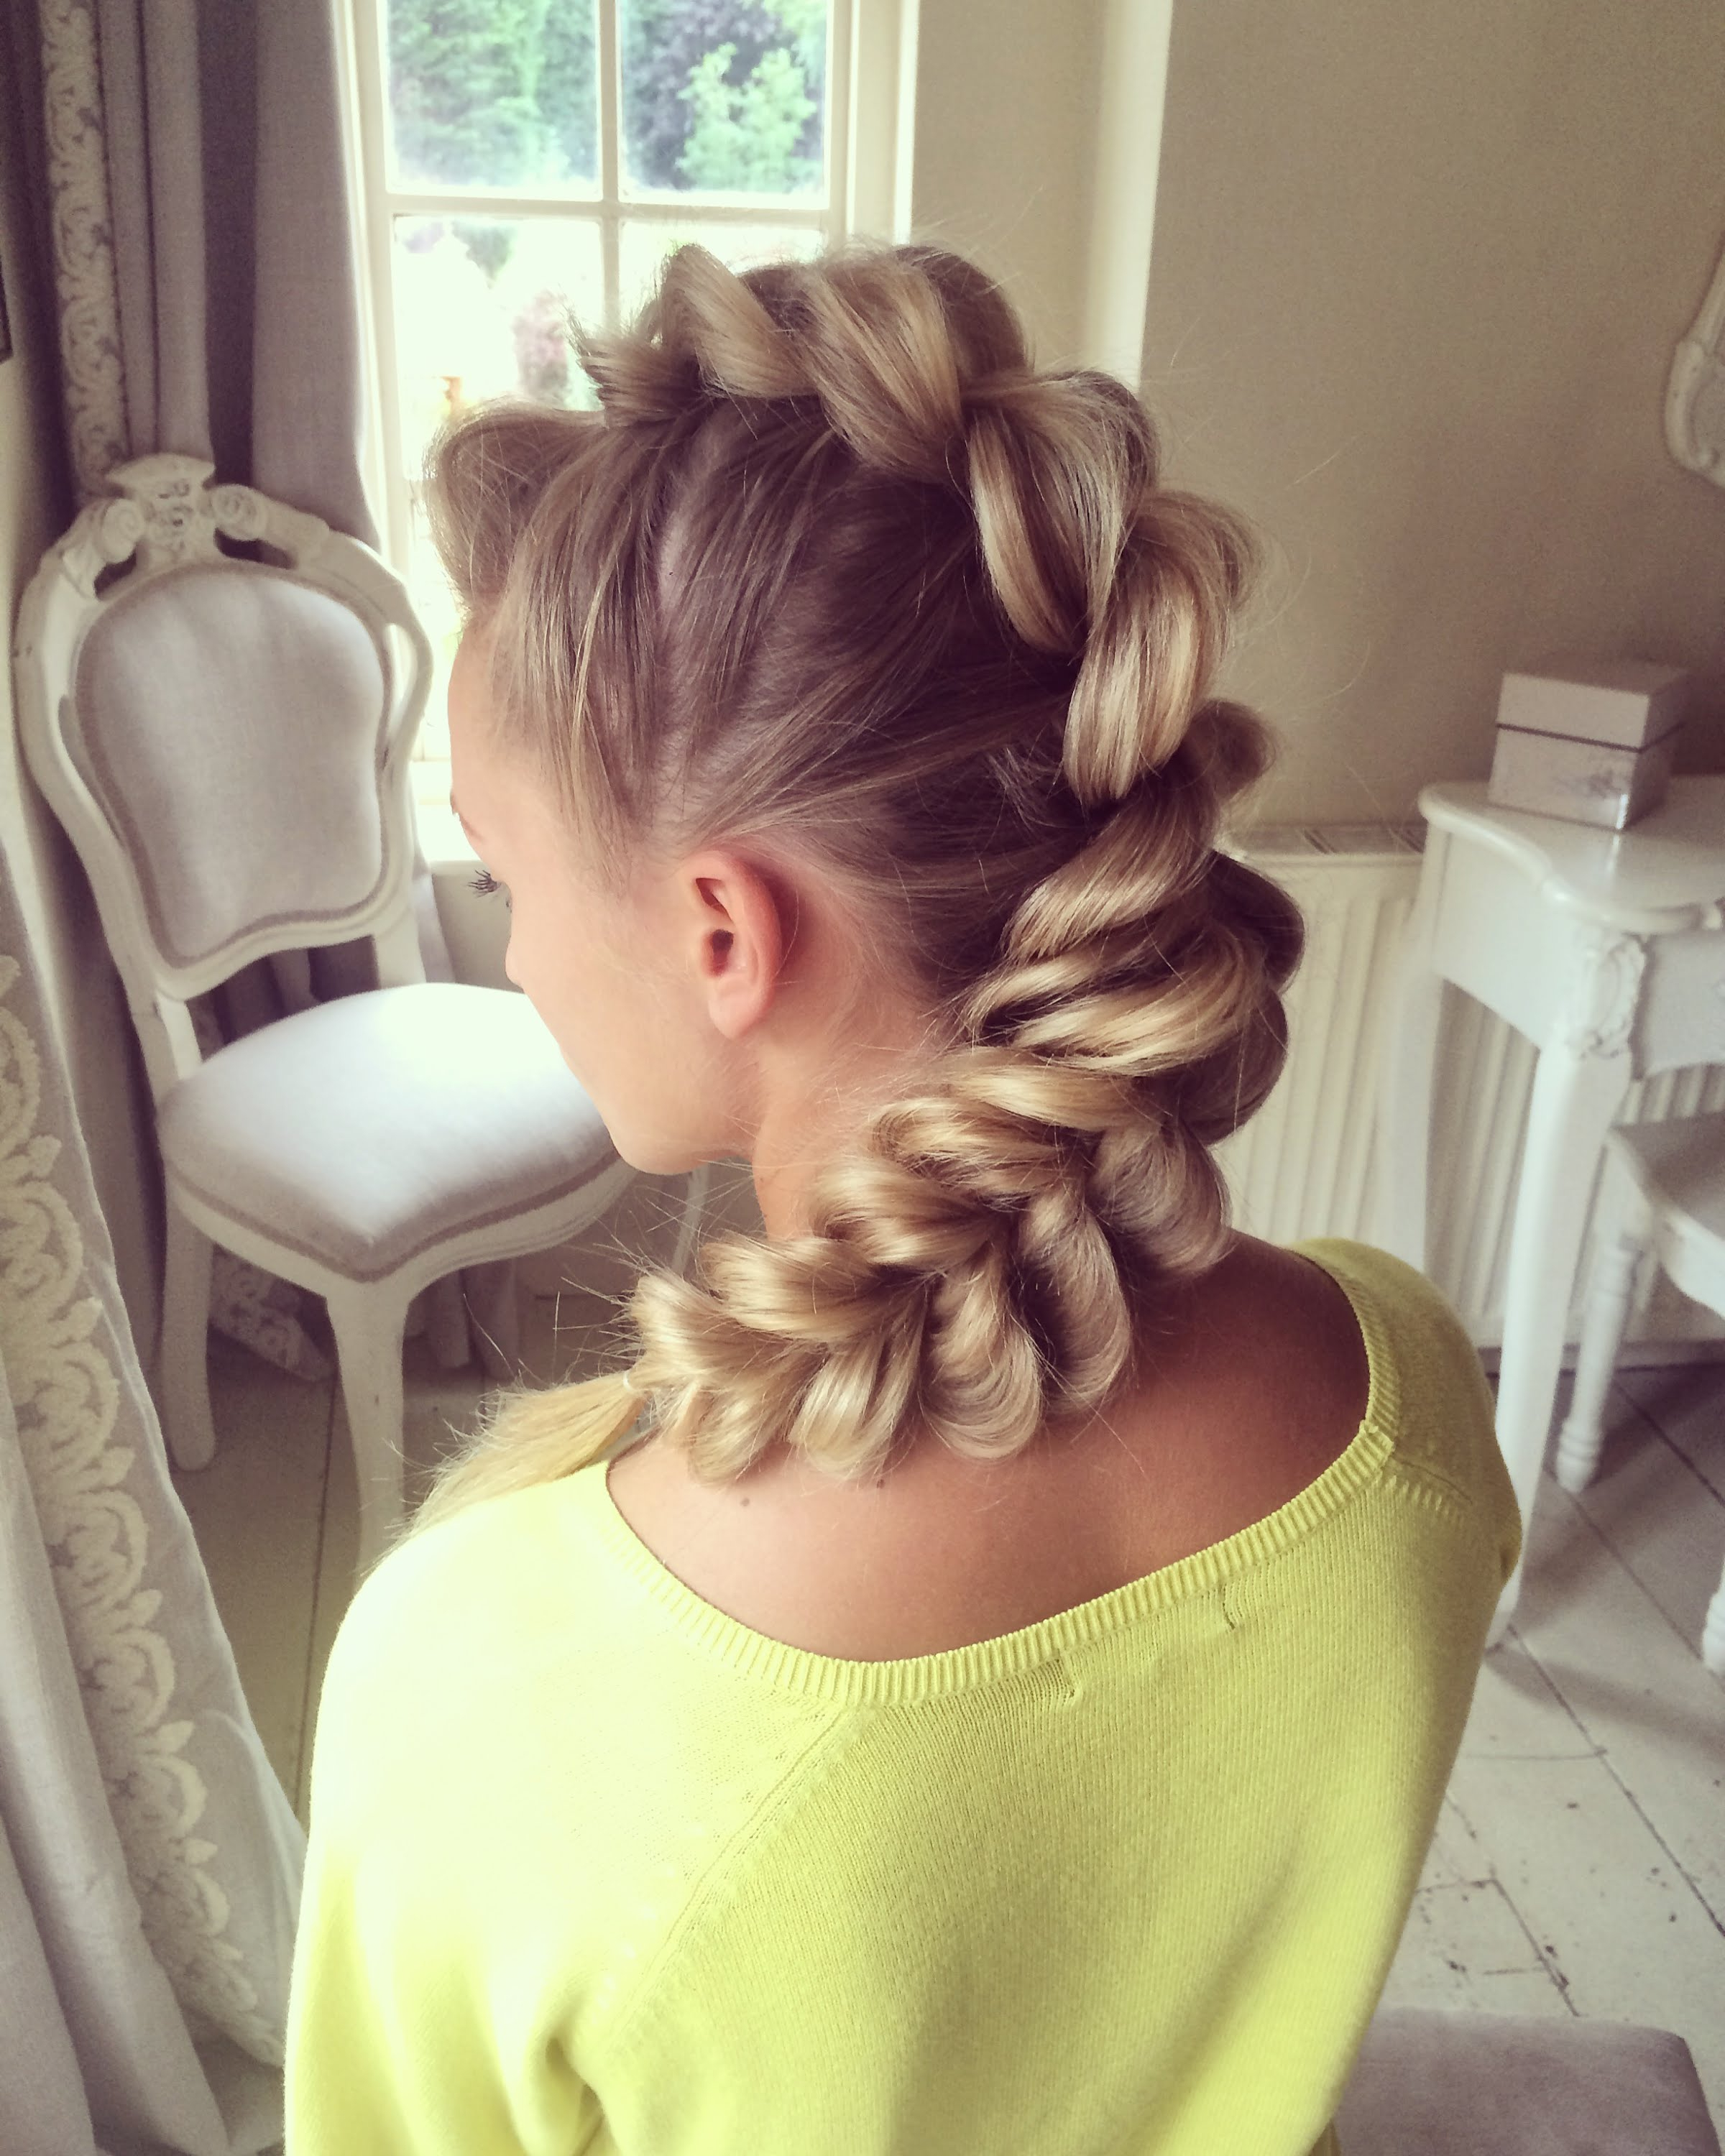 Popular Full Braided Mohawk Hairstyles Regarding 30 Braided Mohawk Styles That Turn Heads (View 18 of 20)